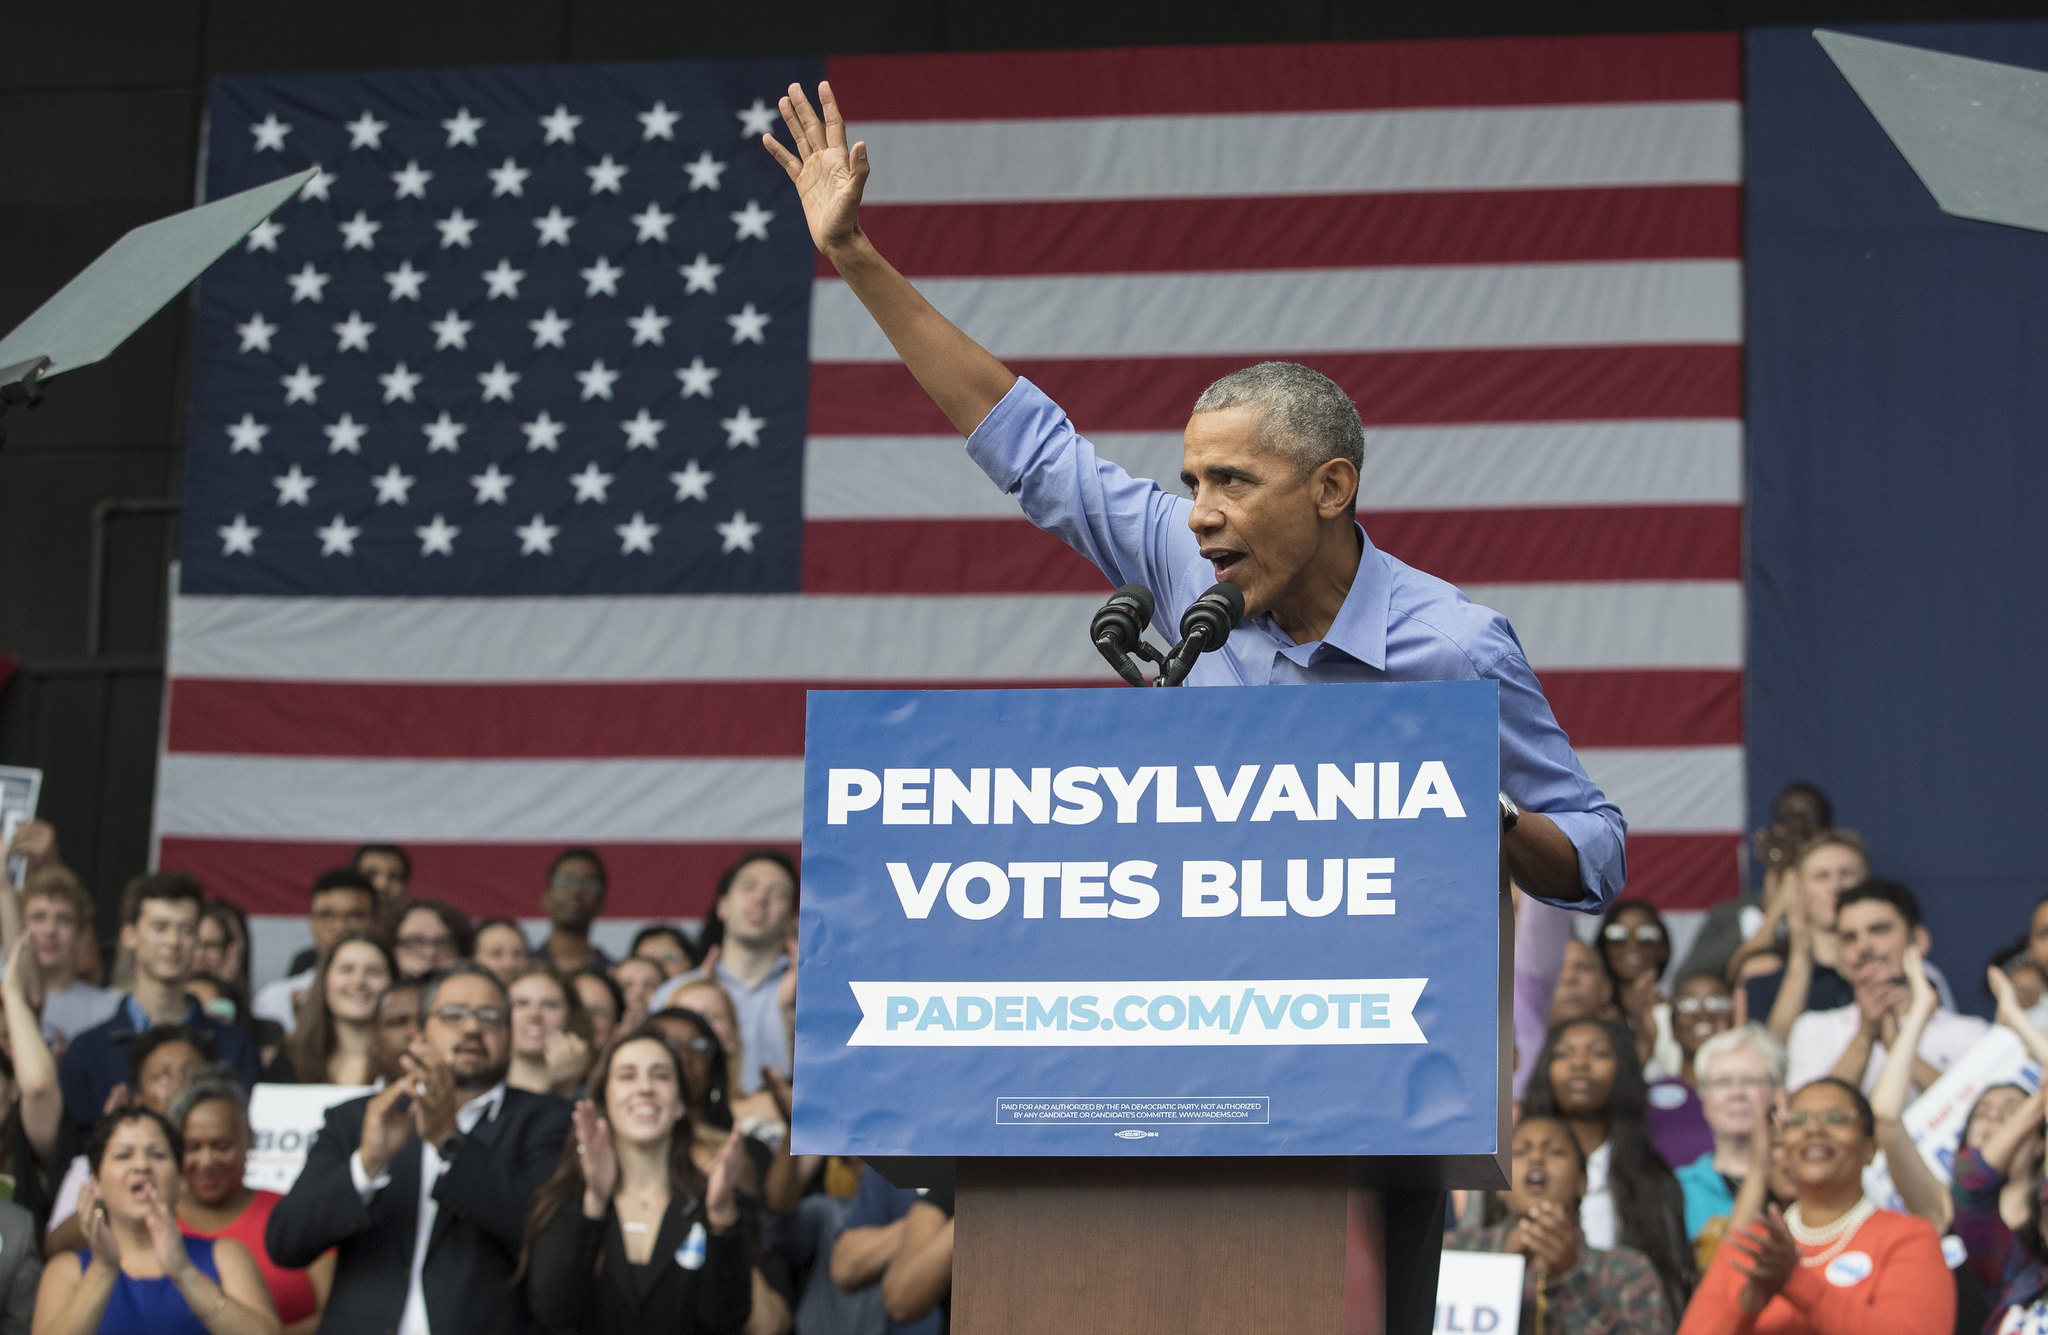 President Barack Obama attended a rally For Senator Bob Casey, Governor Tom Wolf, and Pennsylvania Democrats at The Dell on Sept. 21, 2018.